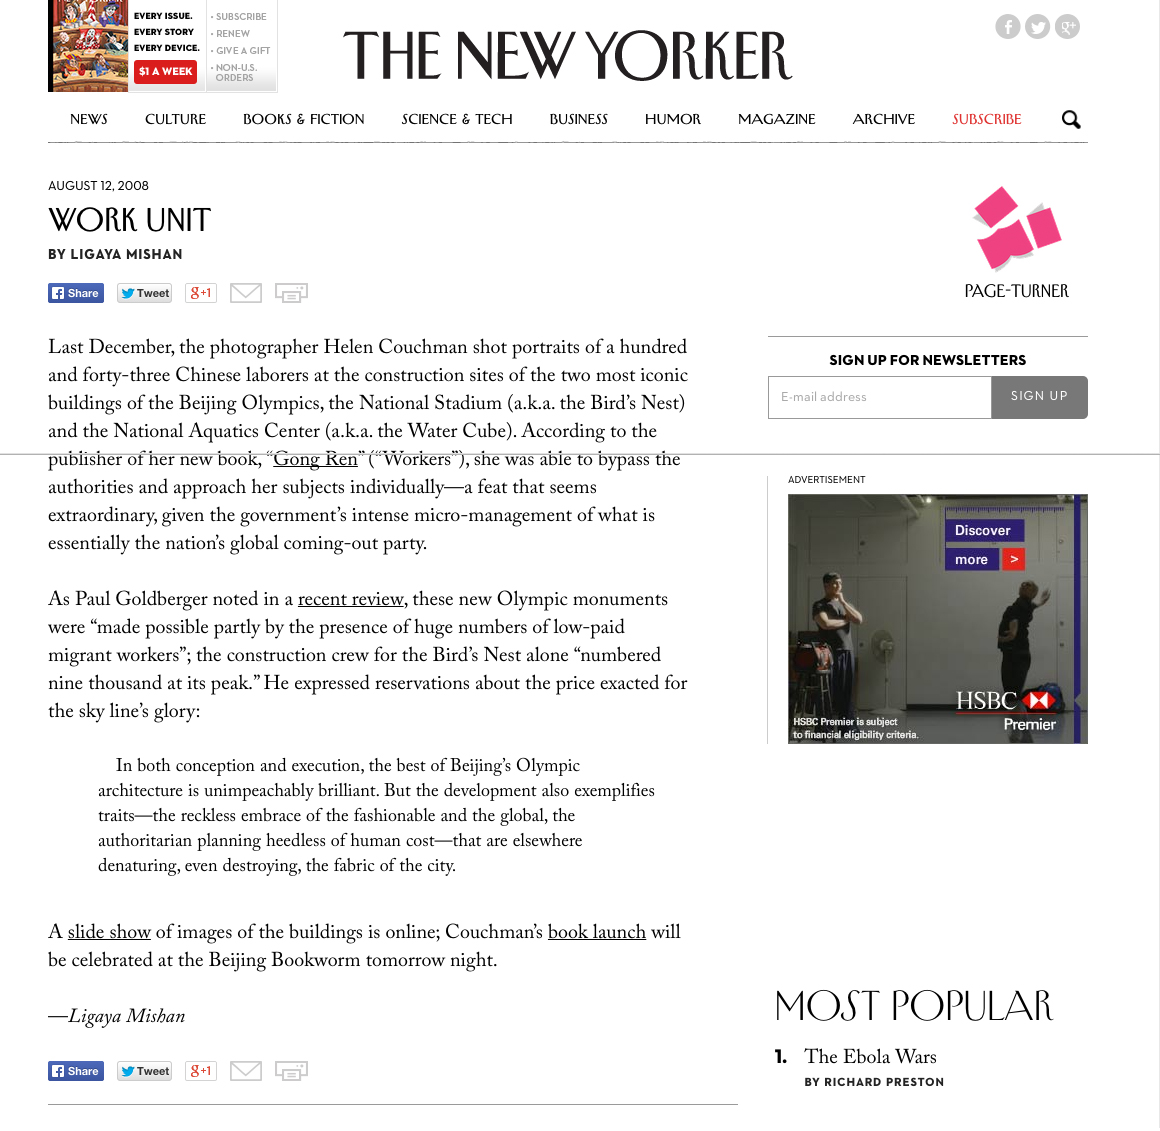 WORKERS in the New Yorker